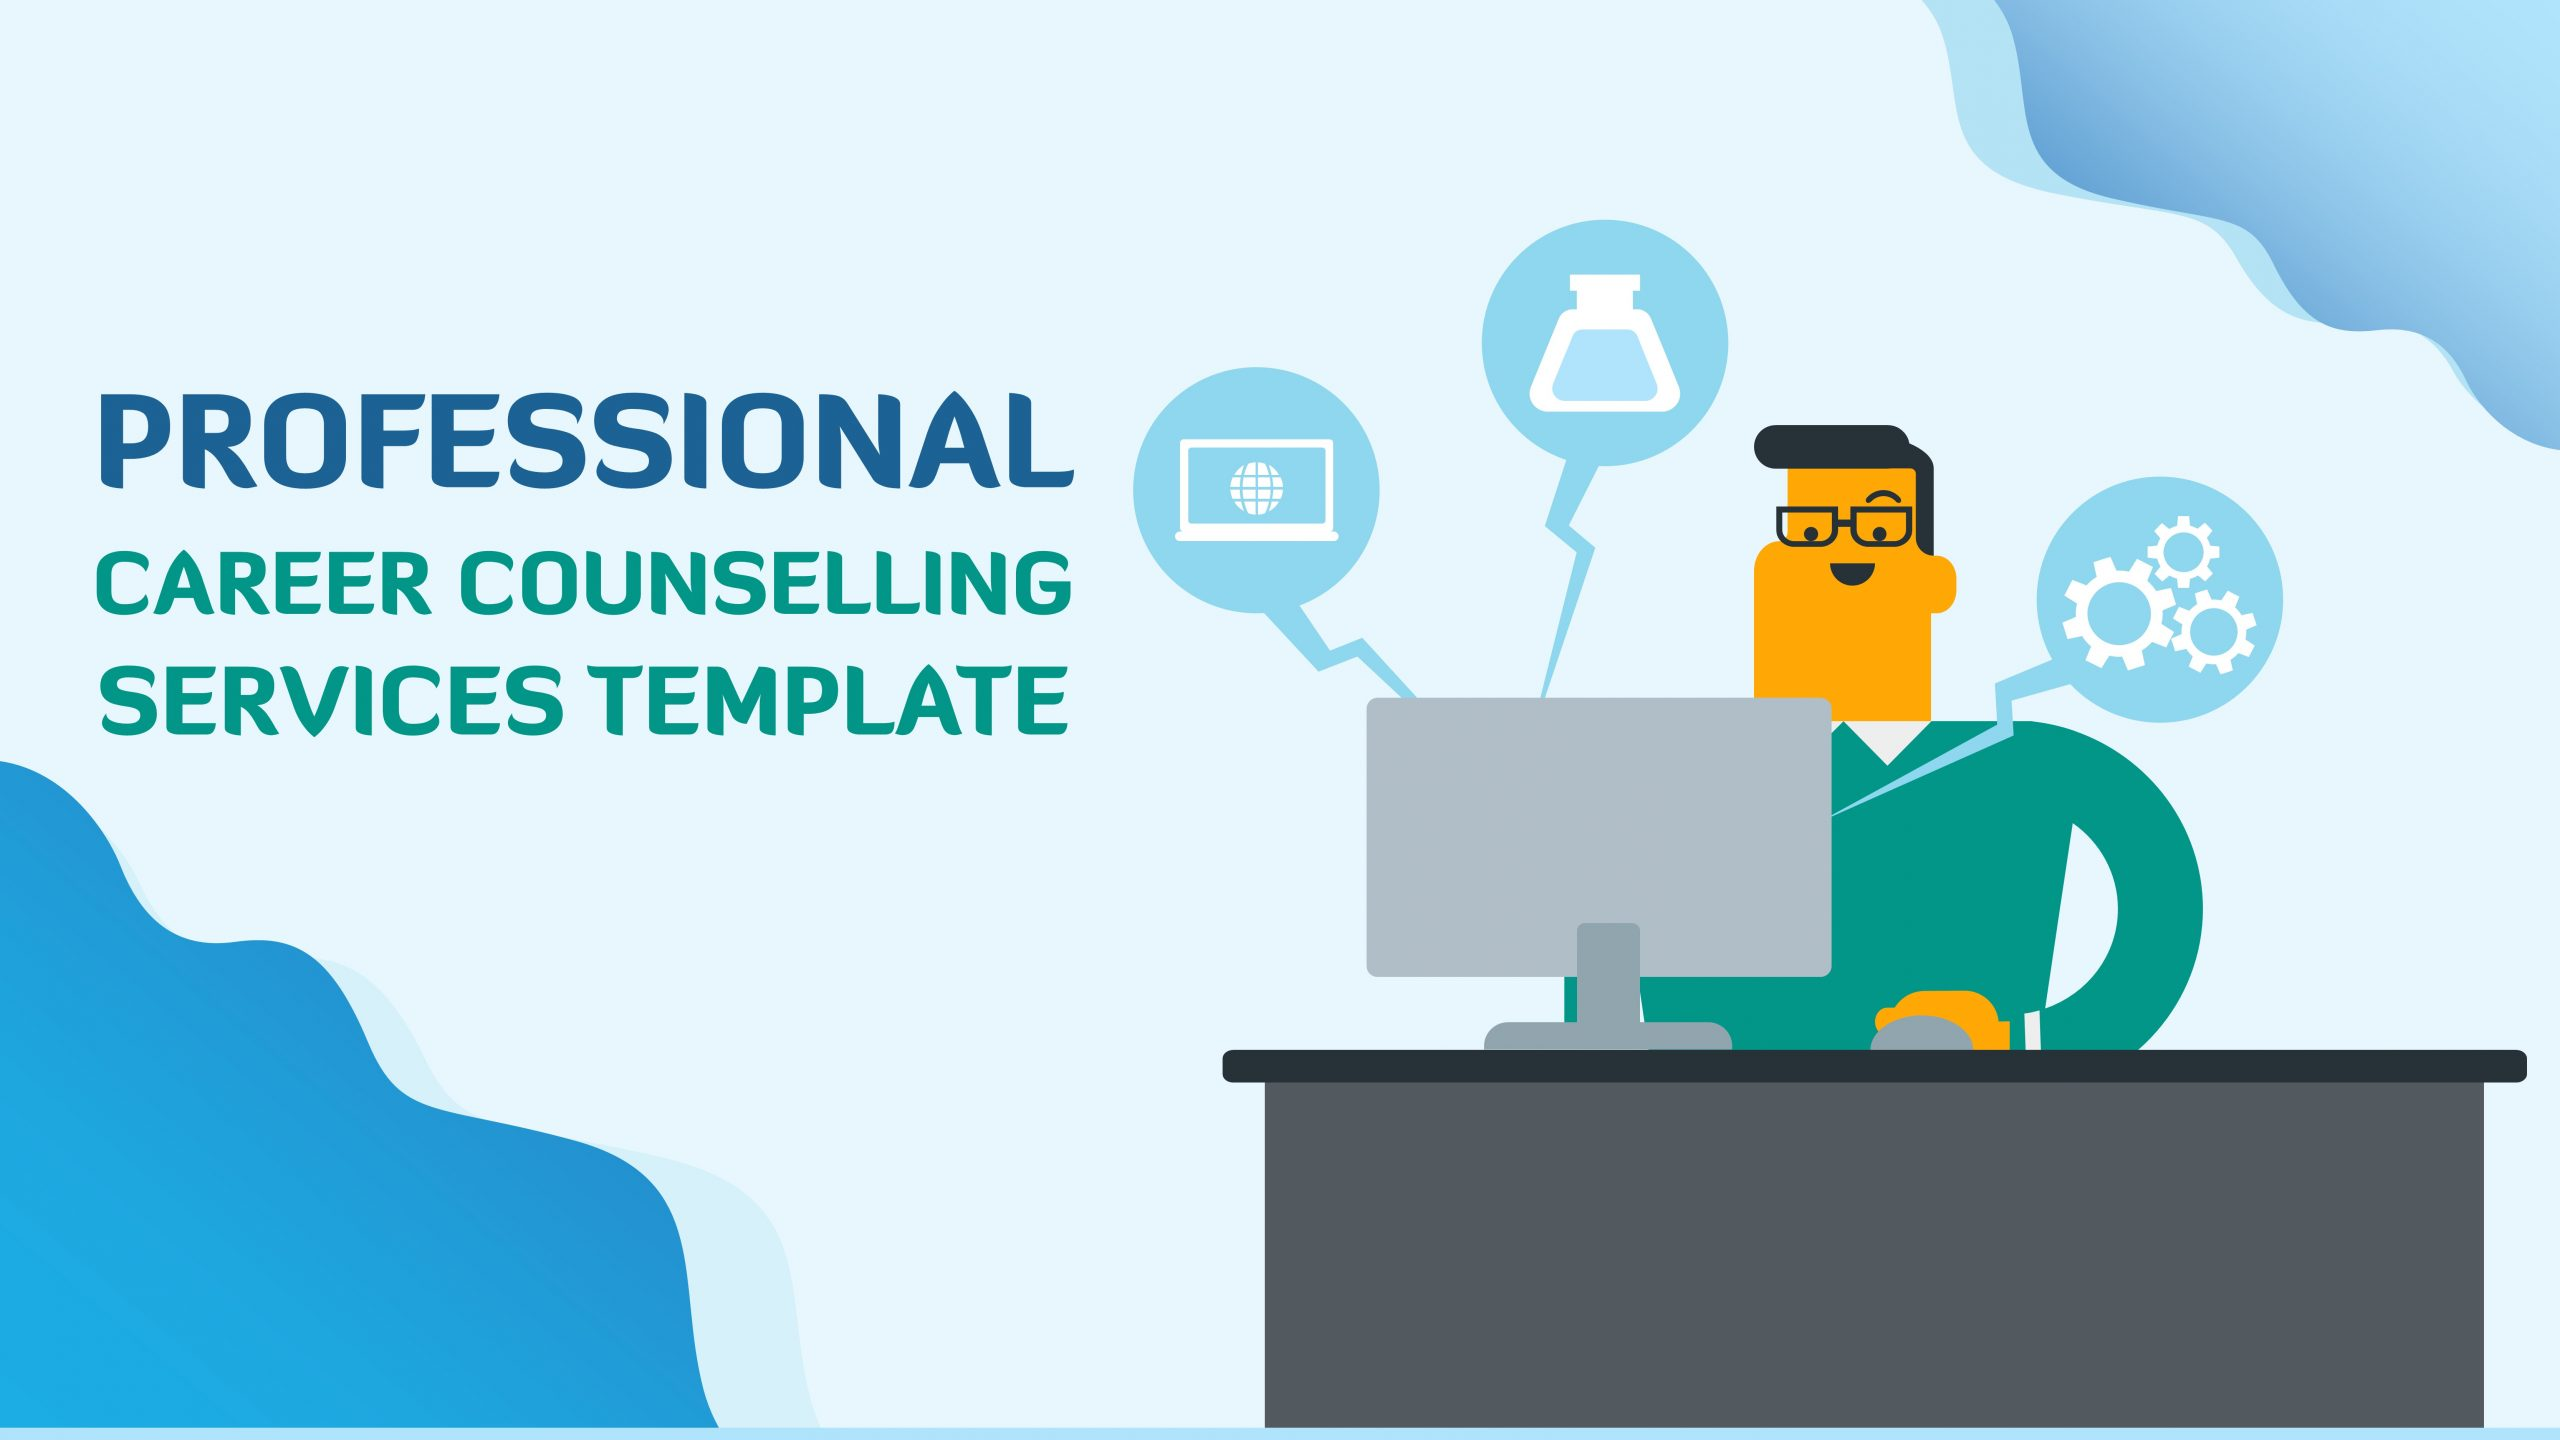 Free presentation template of Professional Career Counselling Services